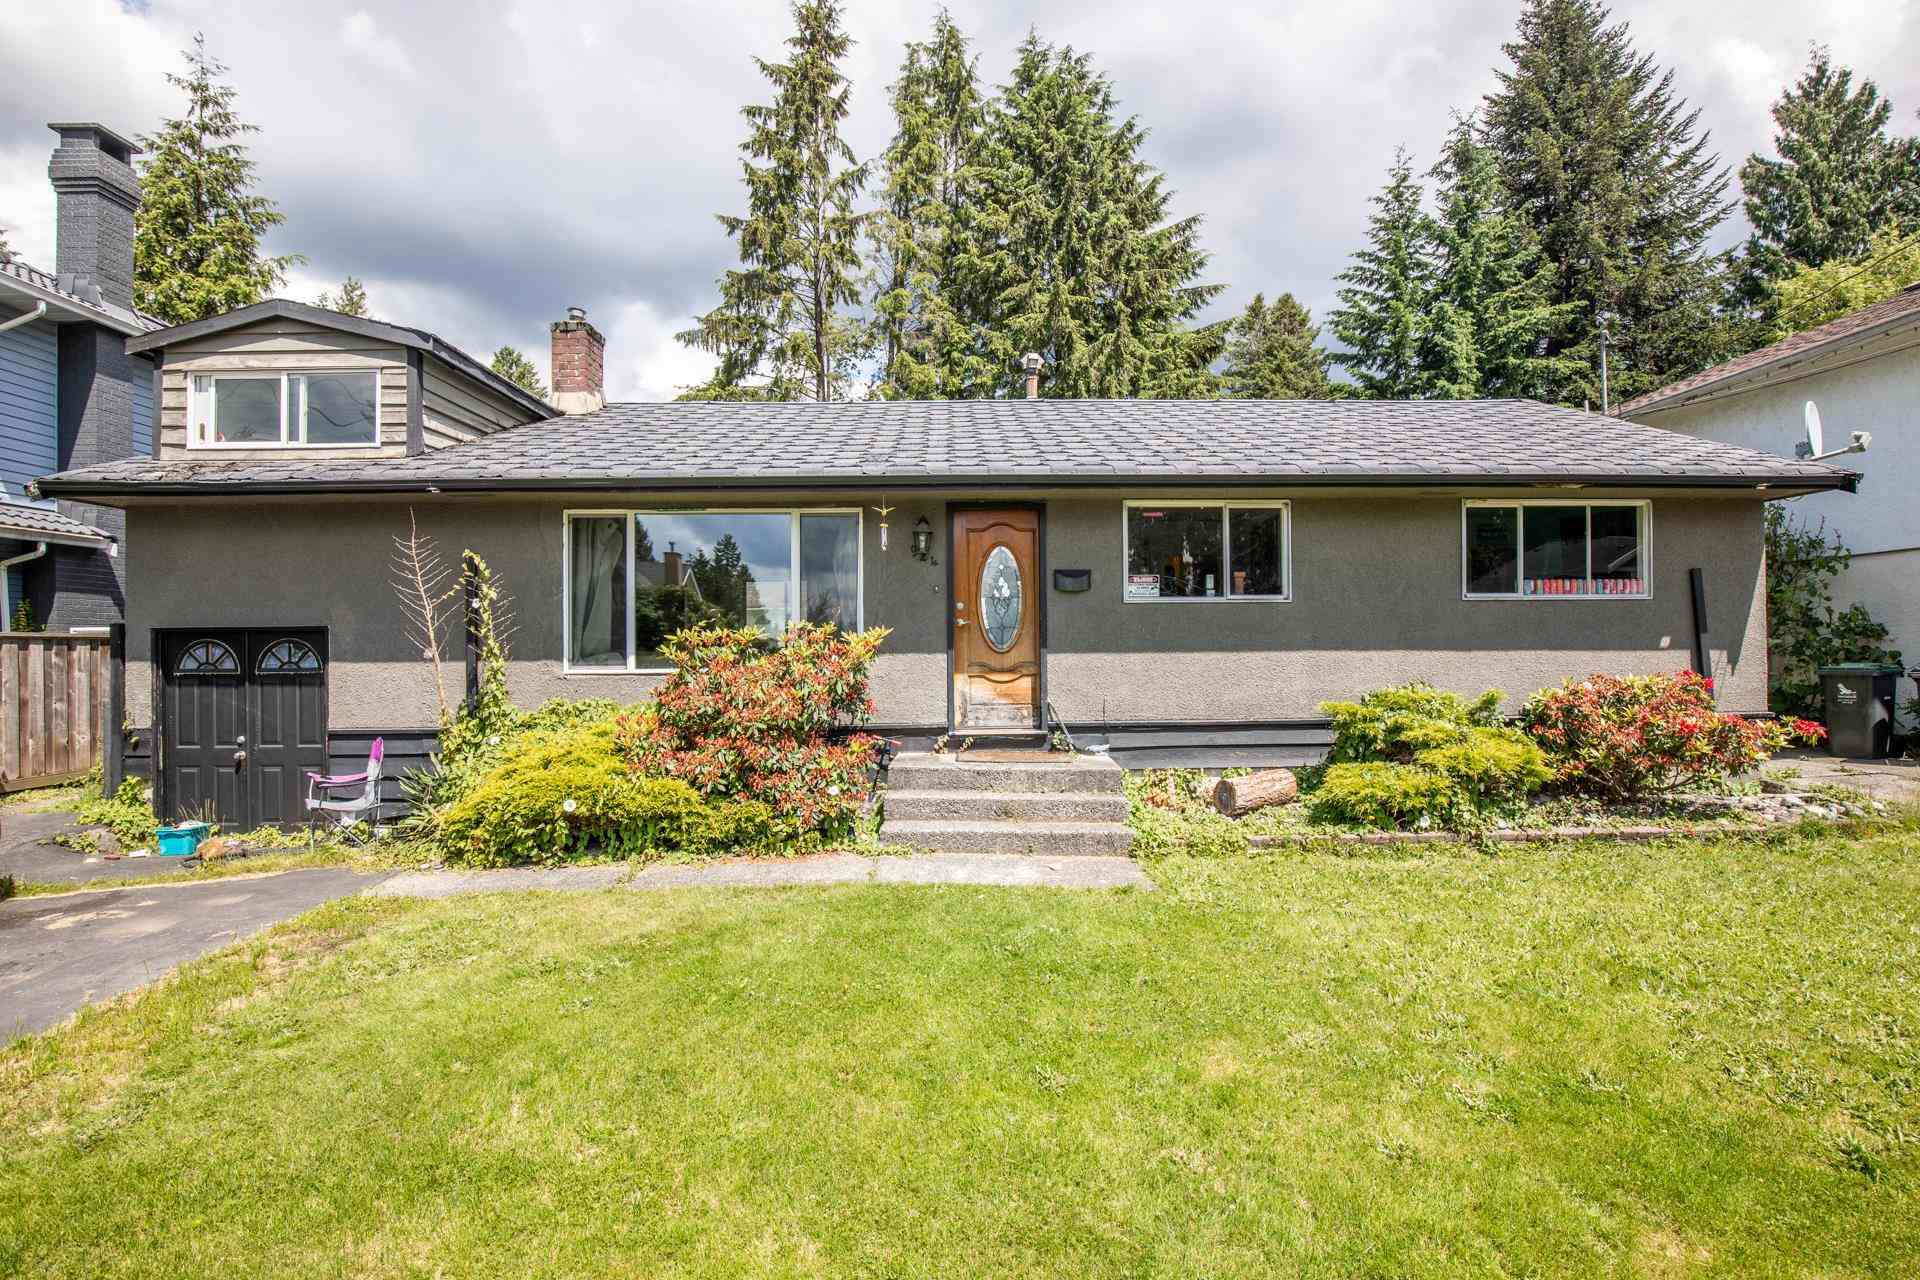 924 VINEY ROAD - Lynn Valley House/Single Family for sale, 3 Bedrooms (R2594861) - #1